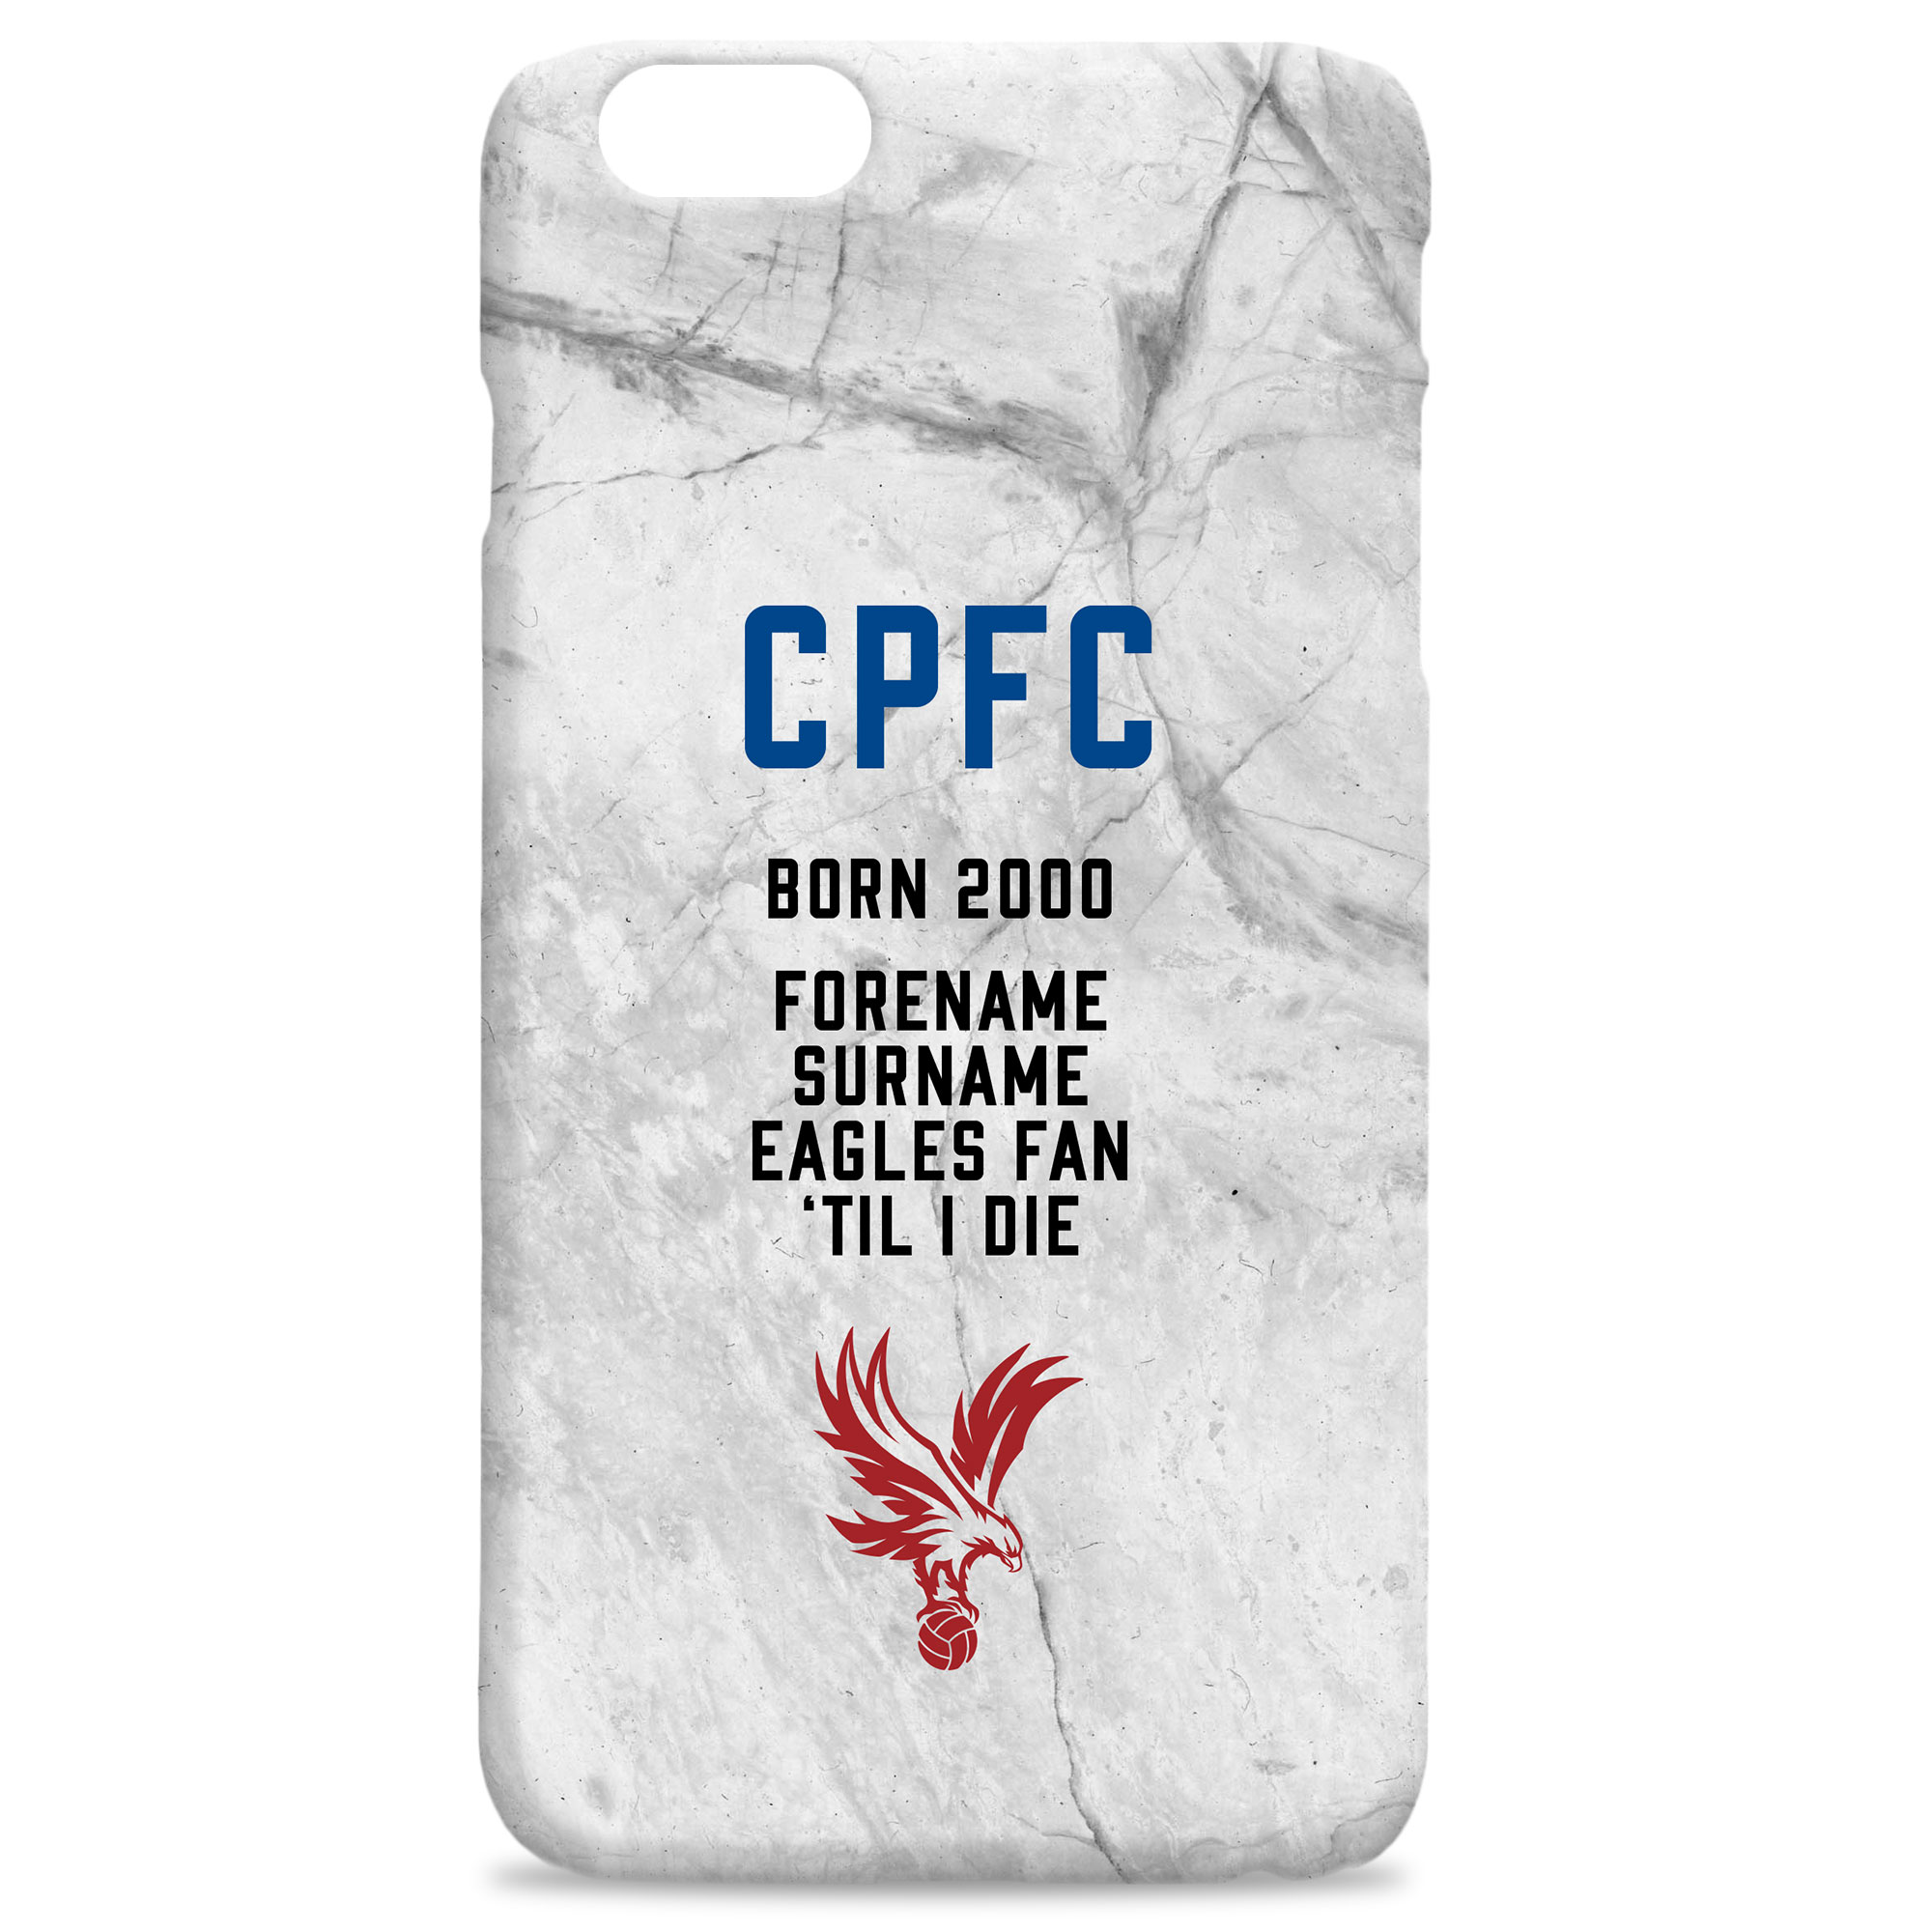 Crystal Palace FC 'Til I Die Hard Back Phone Case